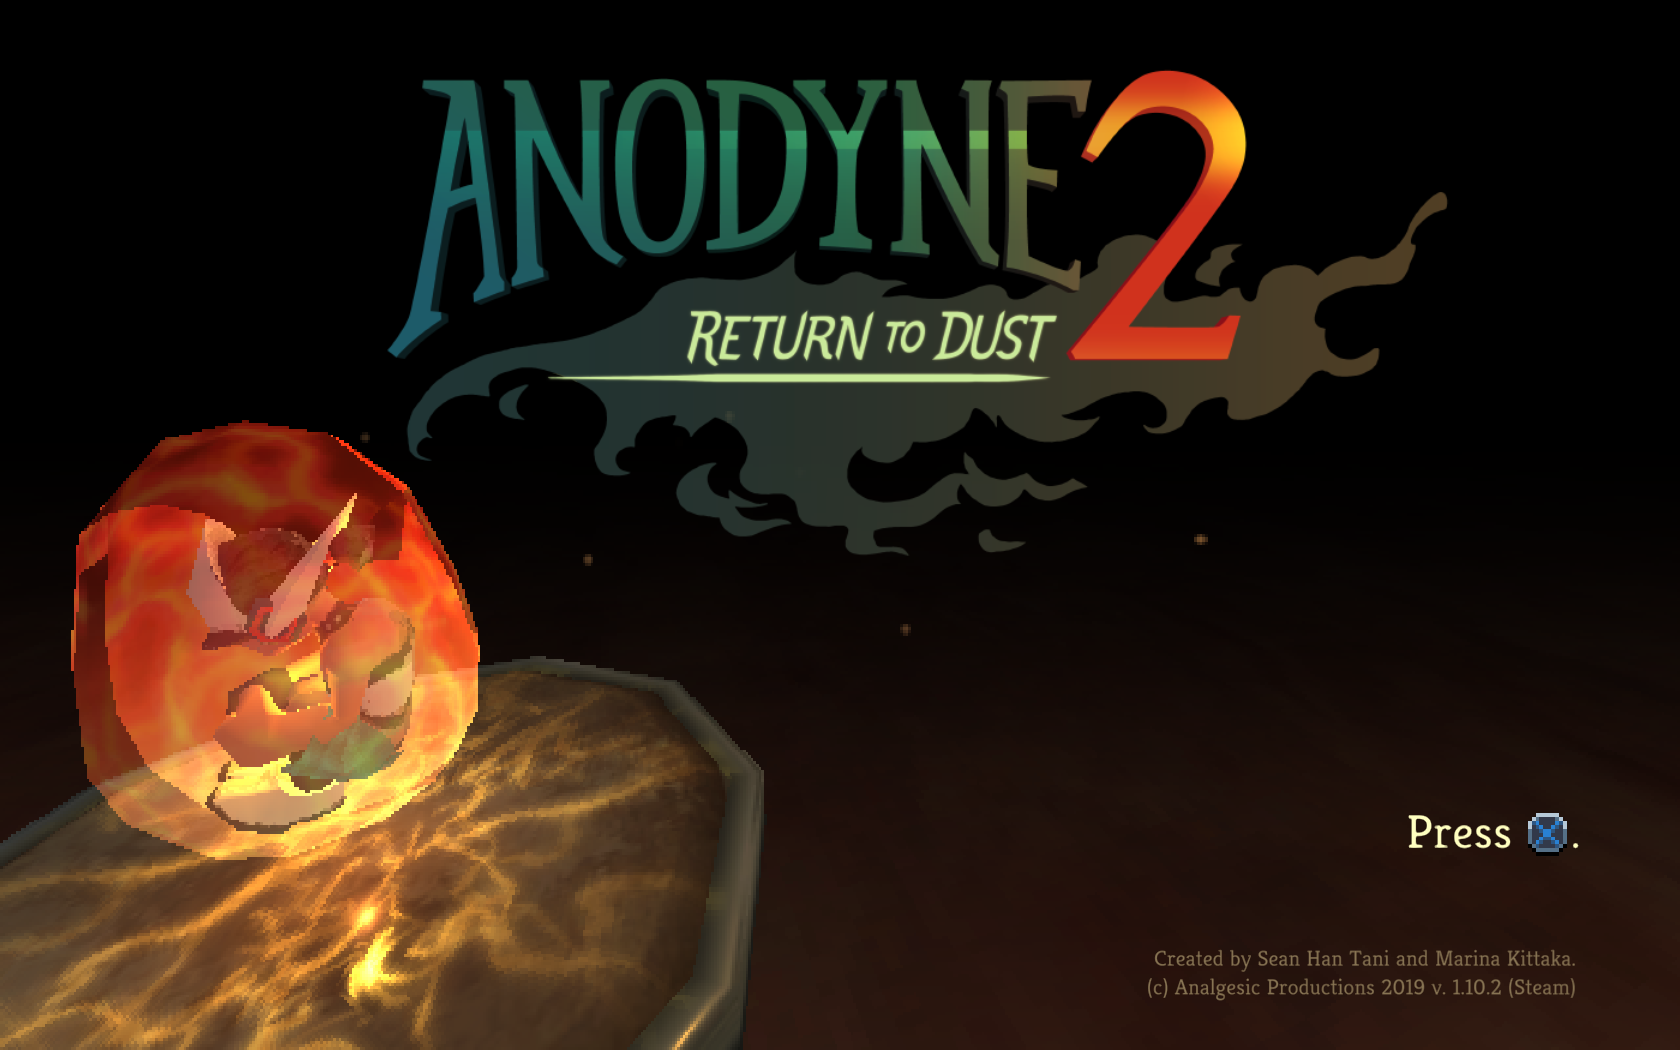 The title screen for Anodyne 2: Return to Dust.